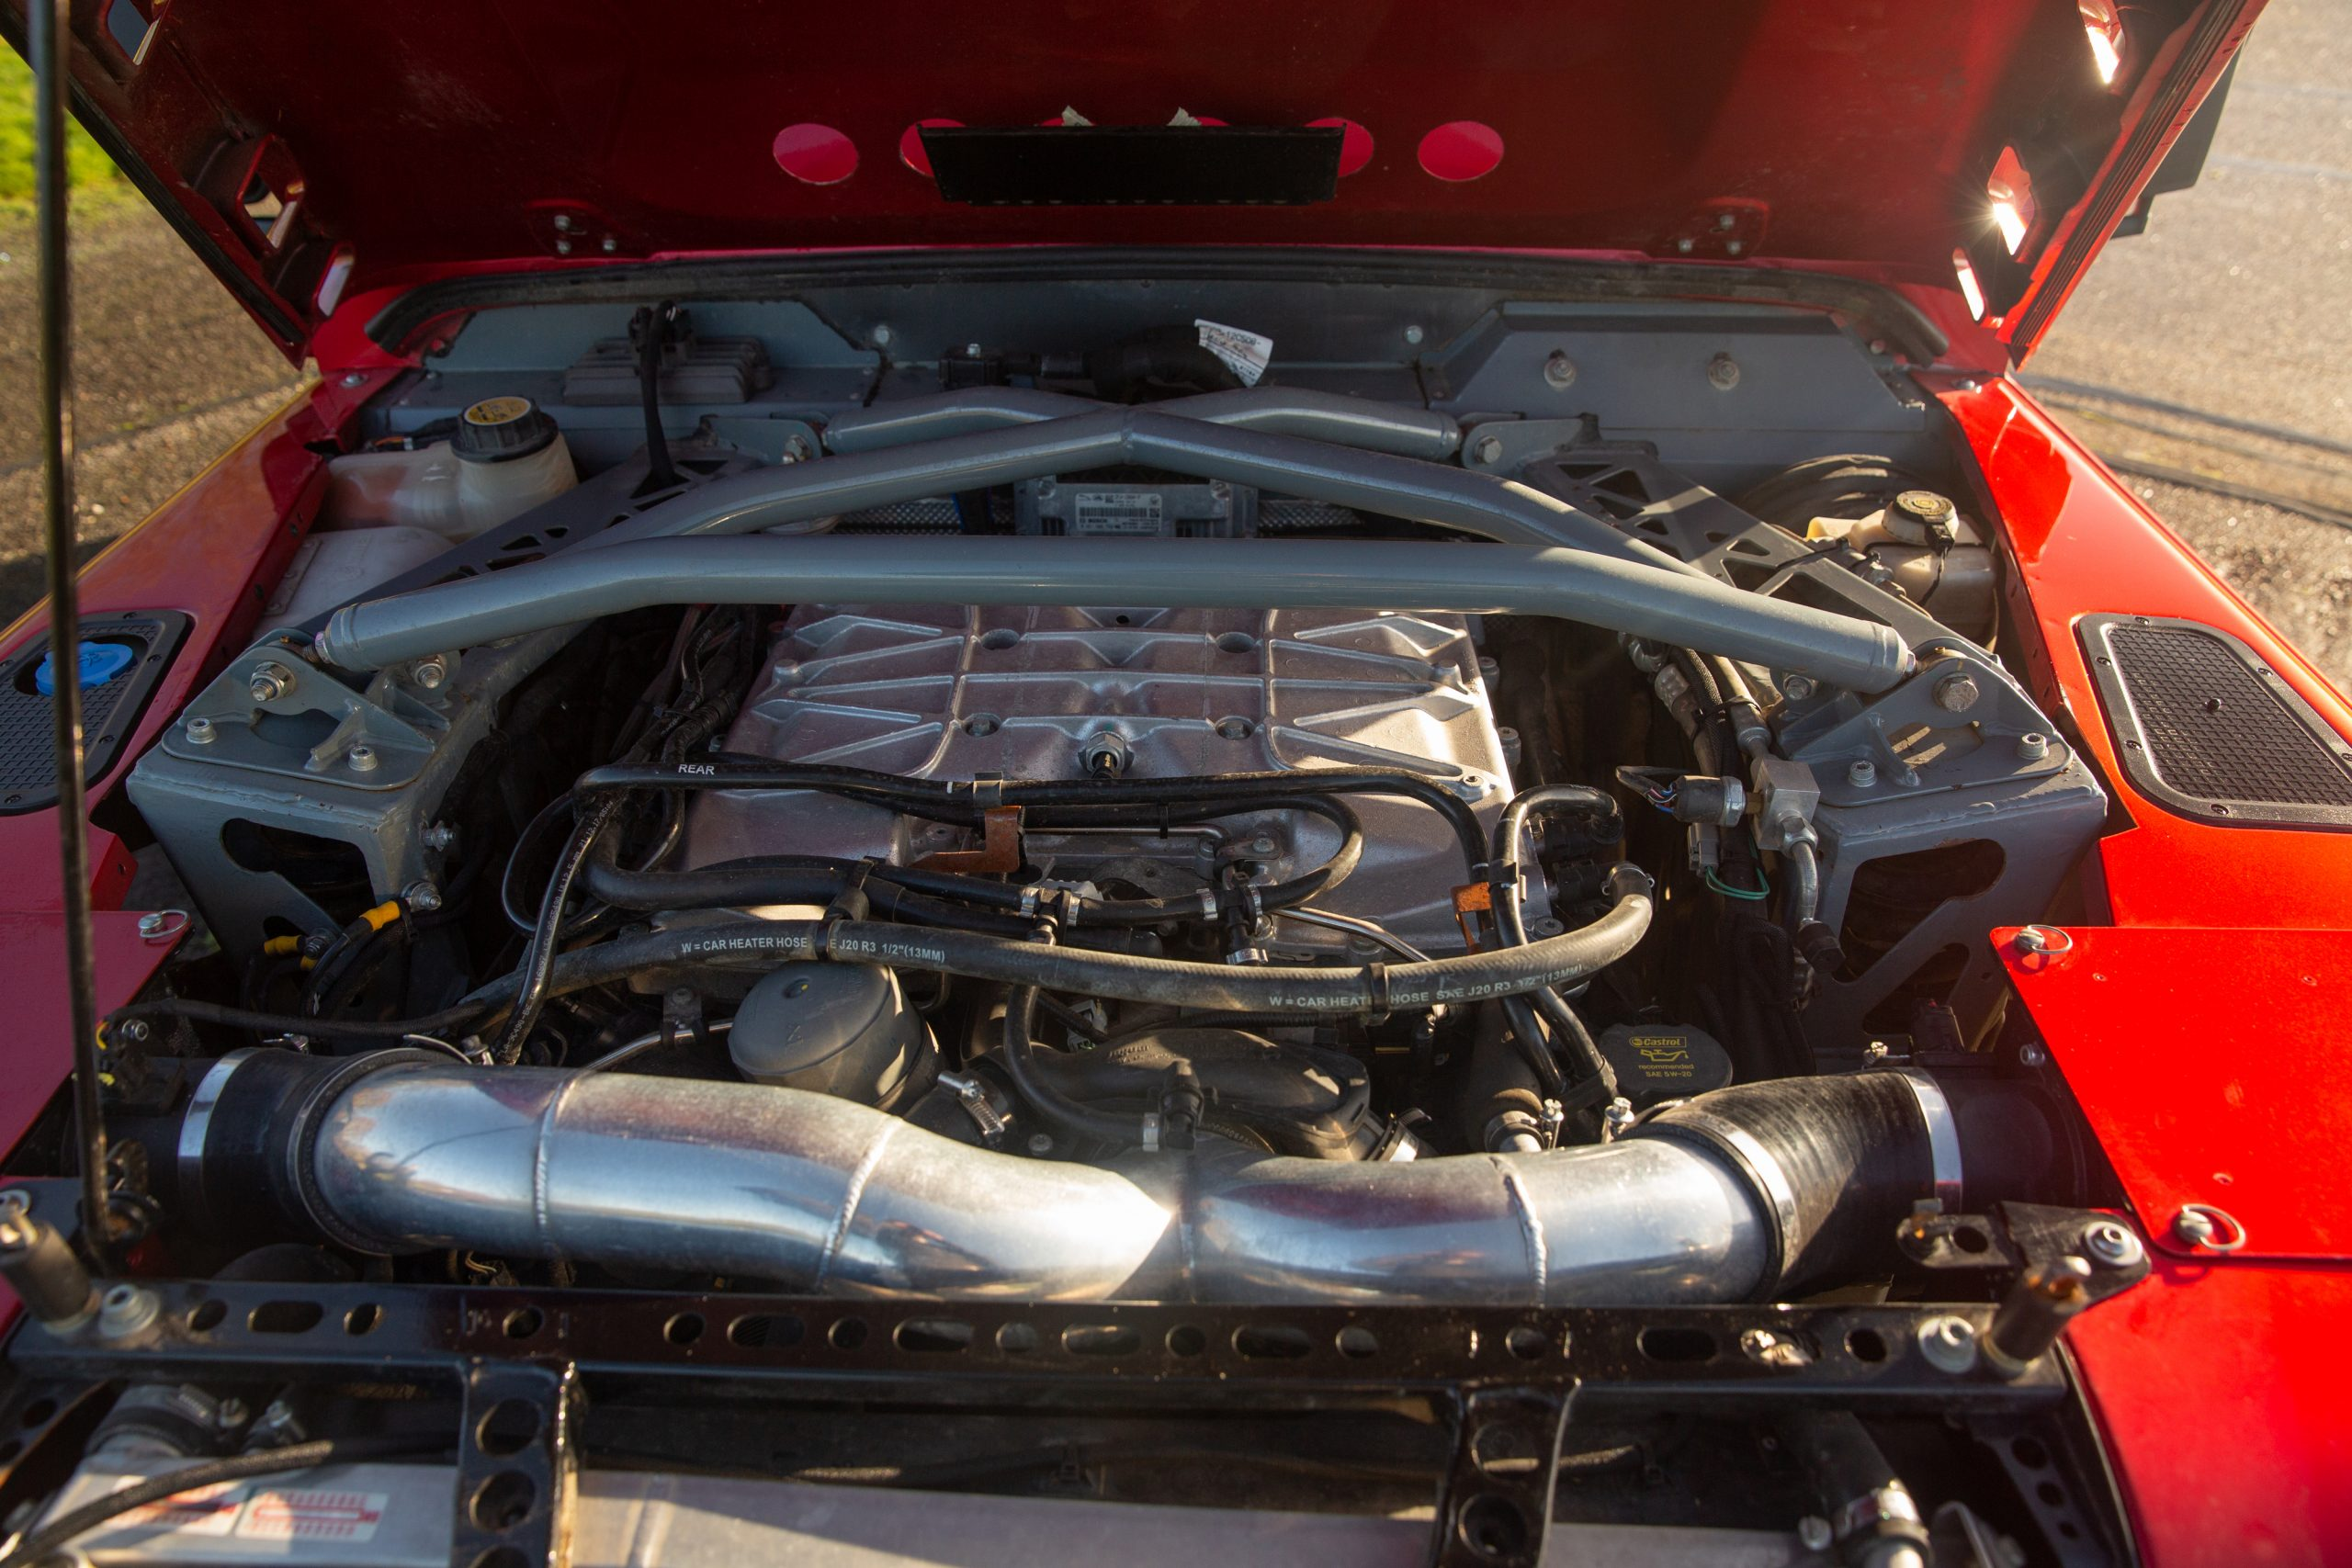 Land Rover Bowler CSP V8 Prototype engine